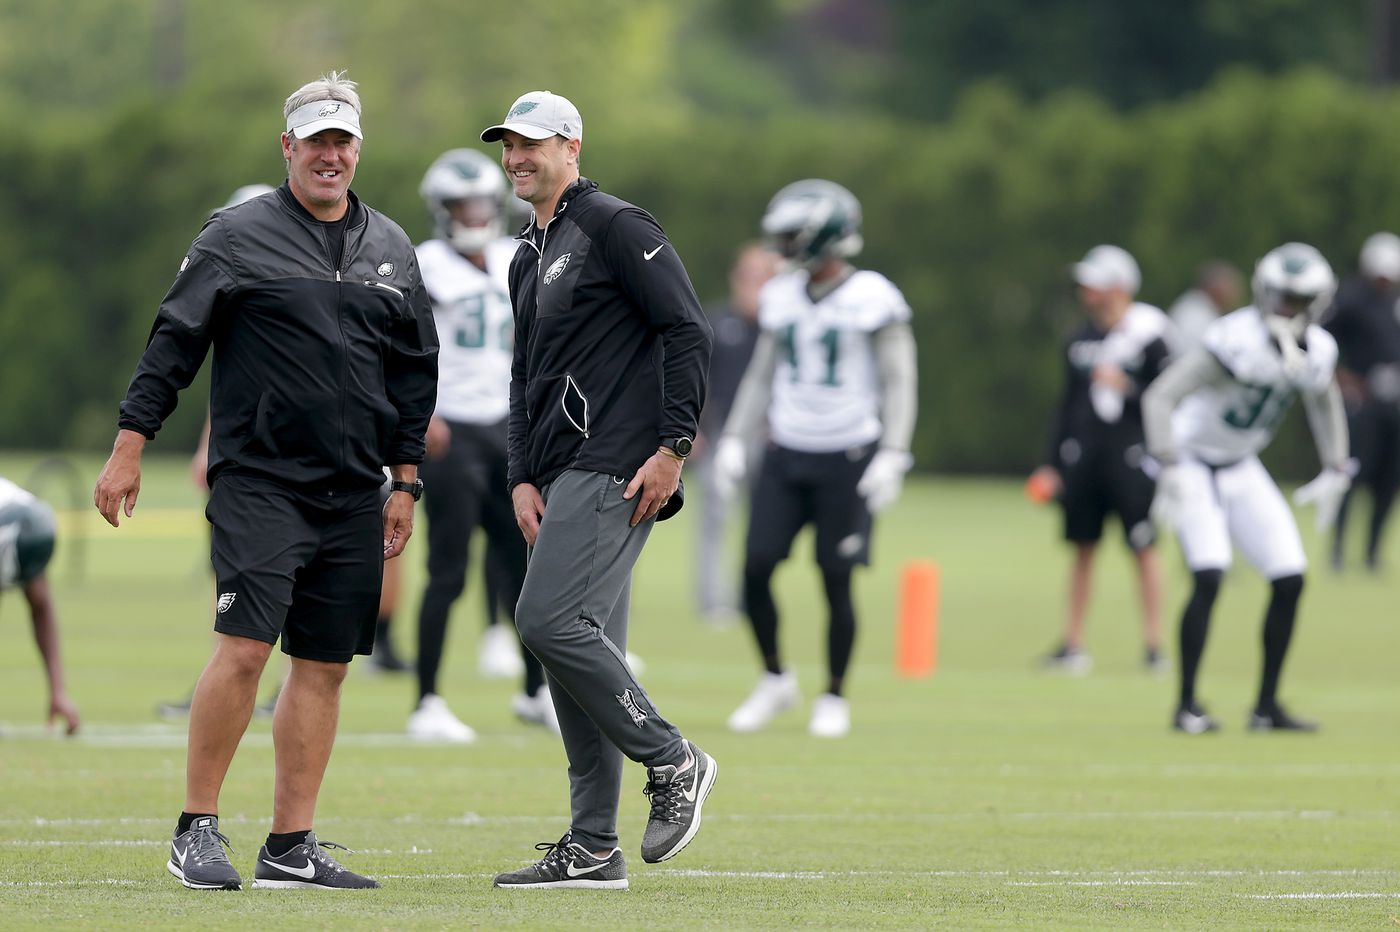 As Eagles face disaster, Doug Pederson wants more from himself and team leaders. Will it be enough?   Marcus Hayes